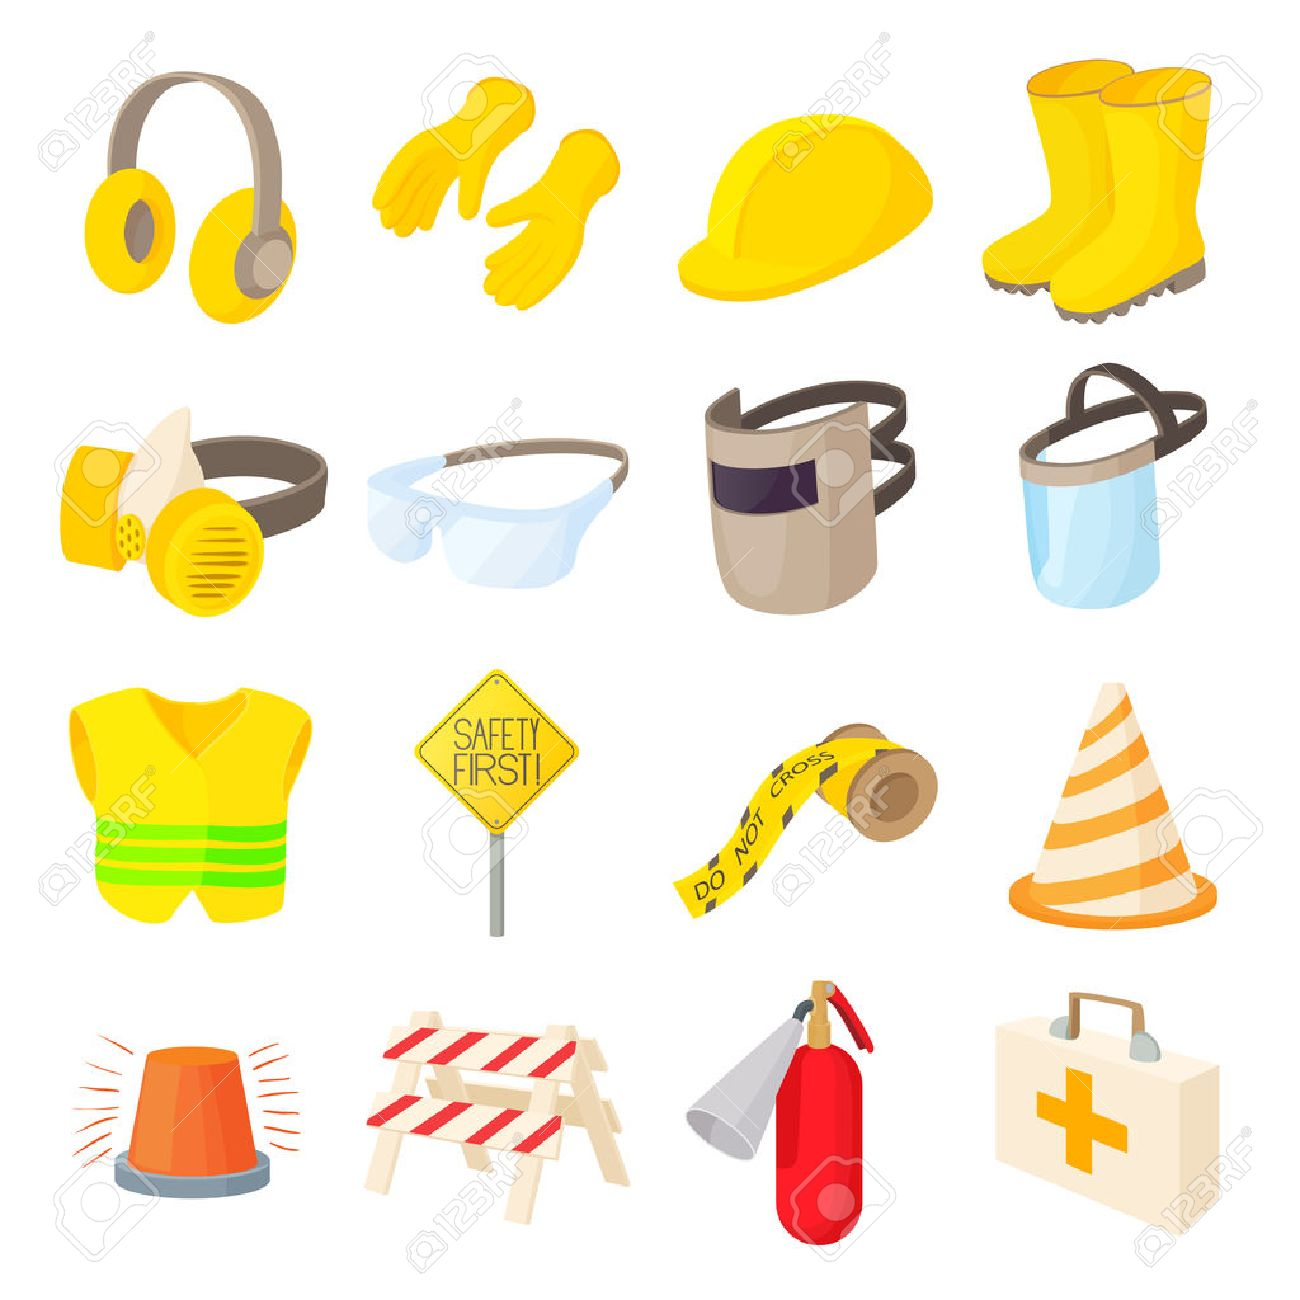 Safety icons set in cartoon style on a white background - 55956583